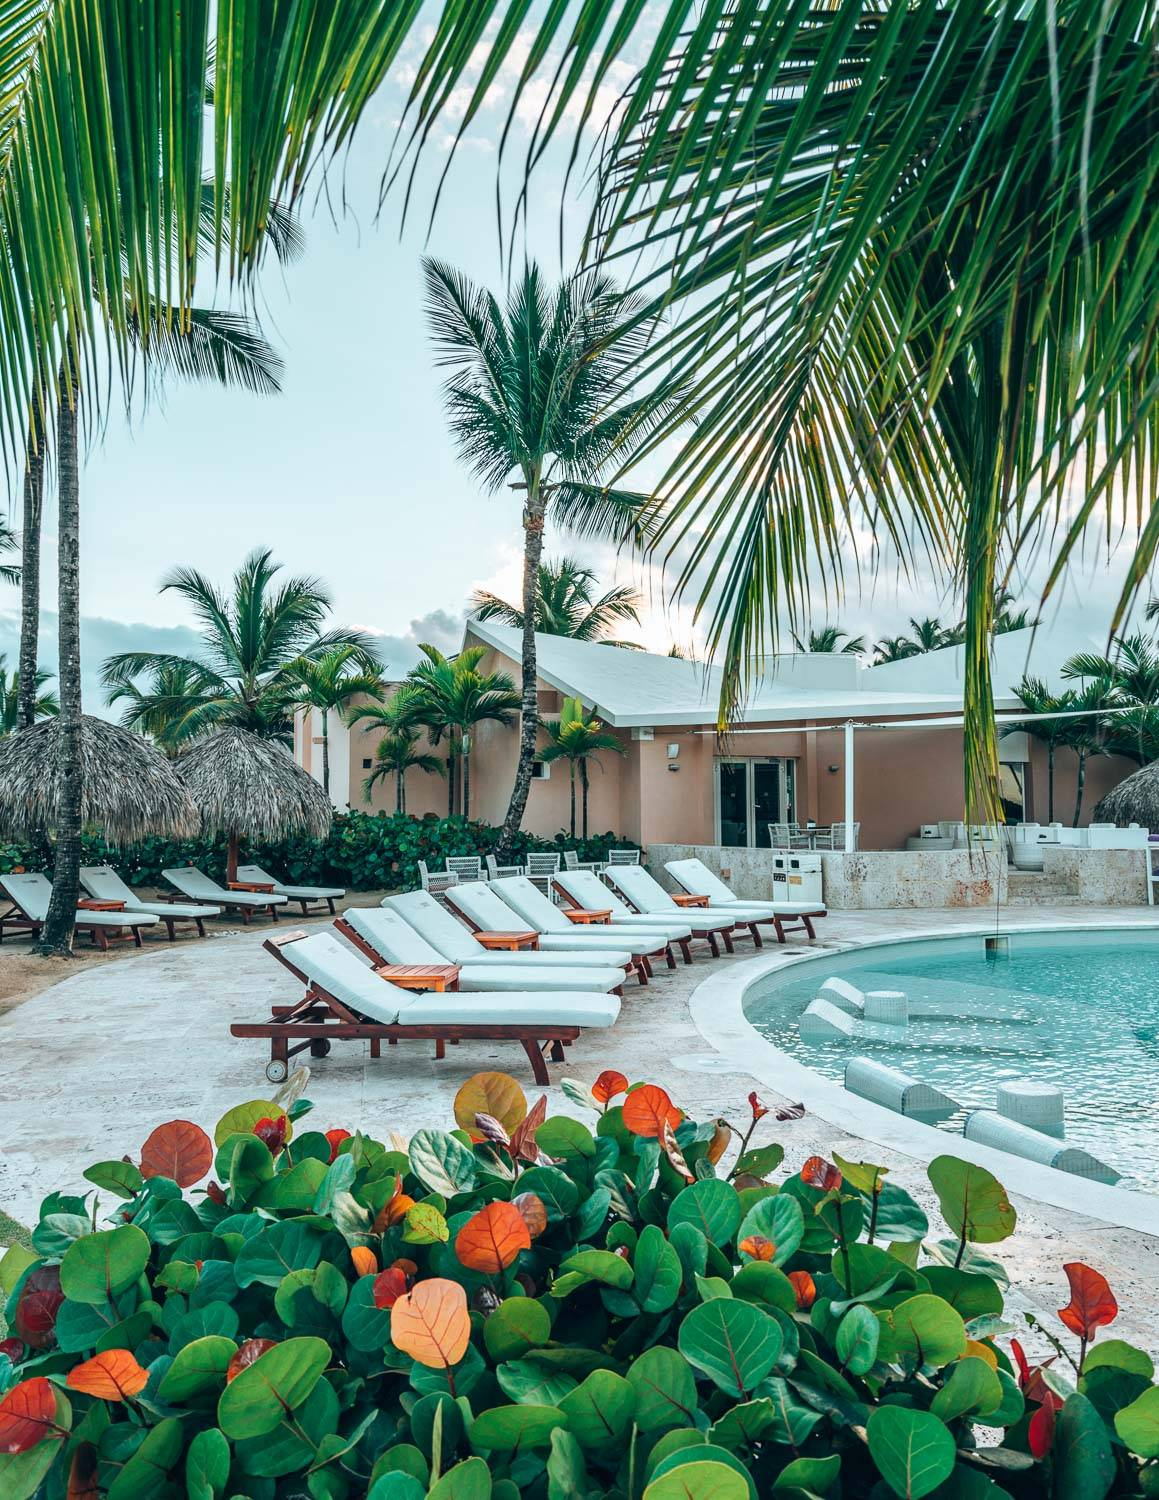 Finding the best things to do in Punta Cana- where to stay, what to eat, and how to get the most out your time there- including finding where the best beaches are.